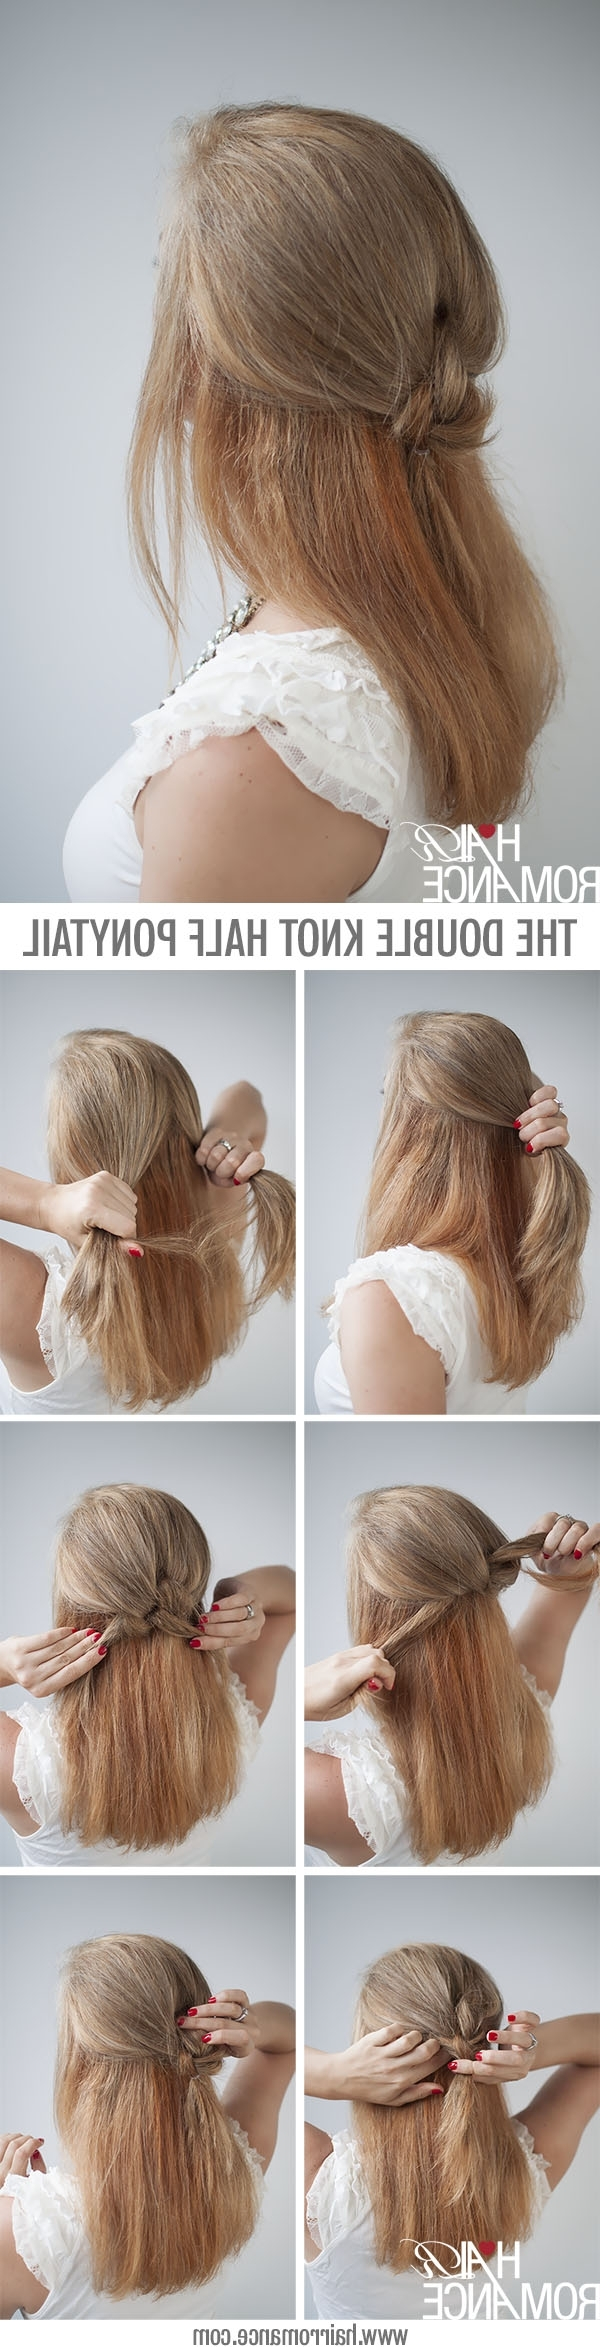 Trendy Double Tied Pony Hairstyles In Knot Your Average Half Ponytail Hairstyle Tutorial – Hair Romance (View 17 of 20)